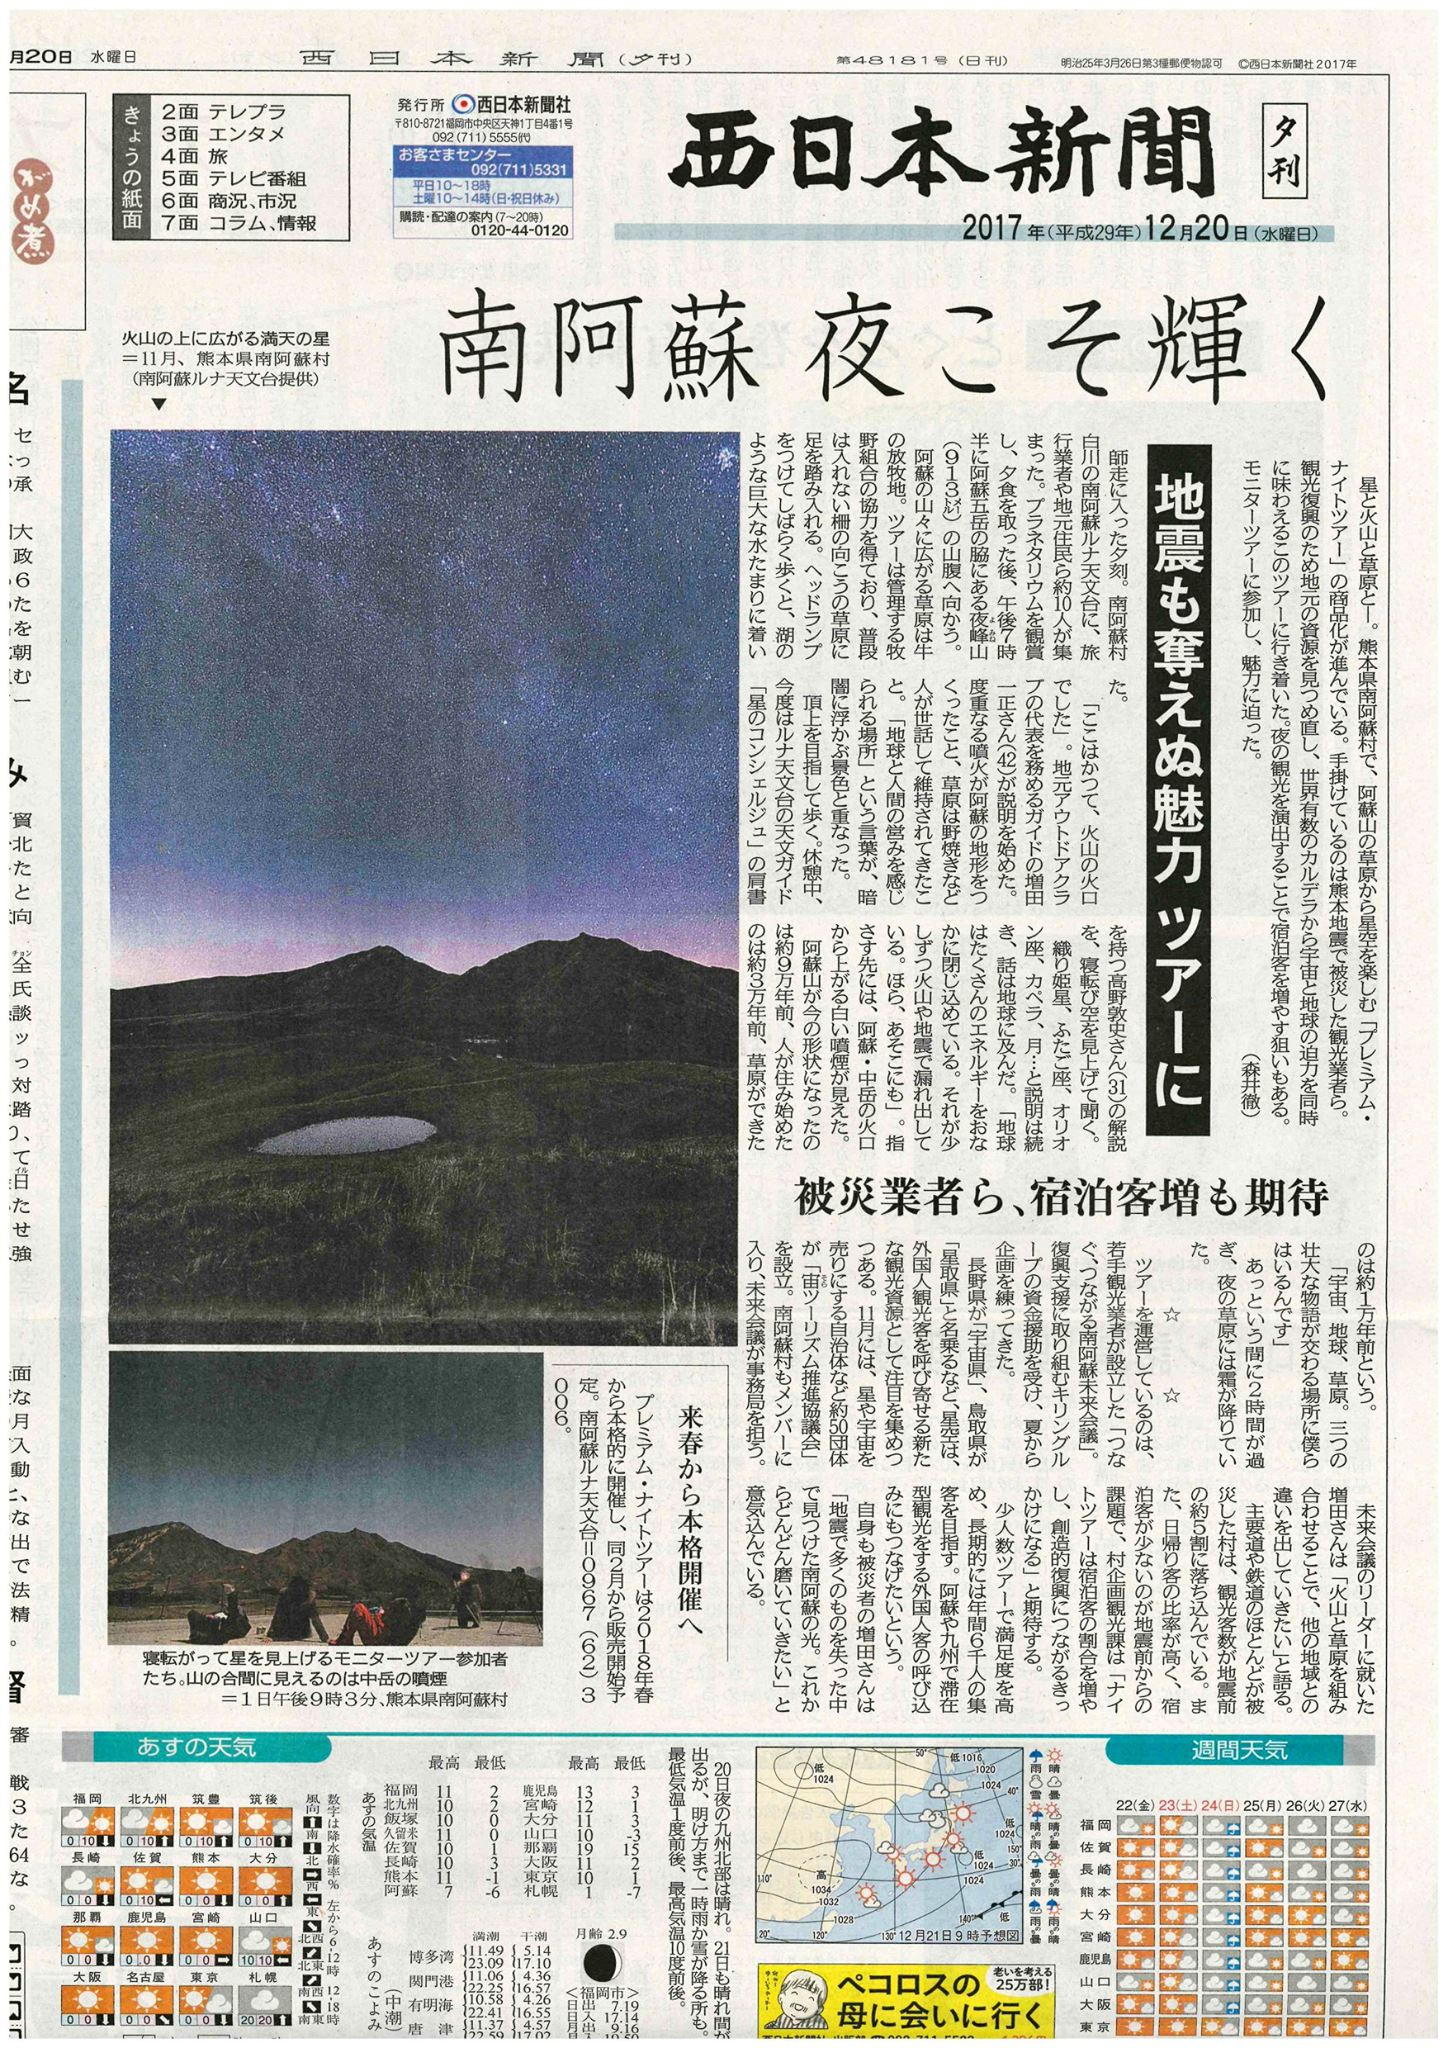 West Japan Newspaper 12 / 20 evening paper one side